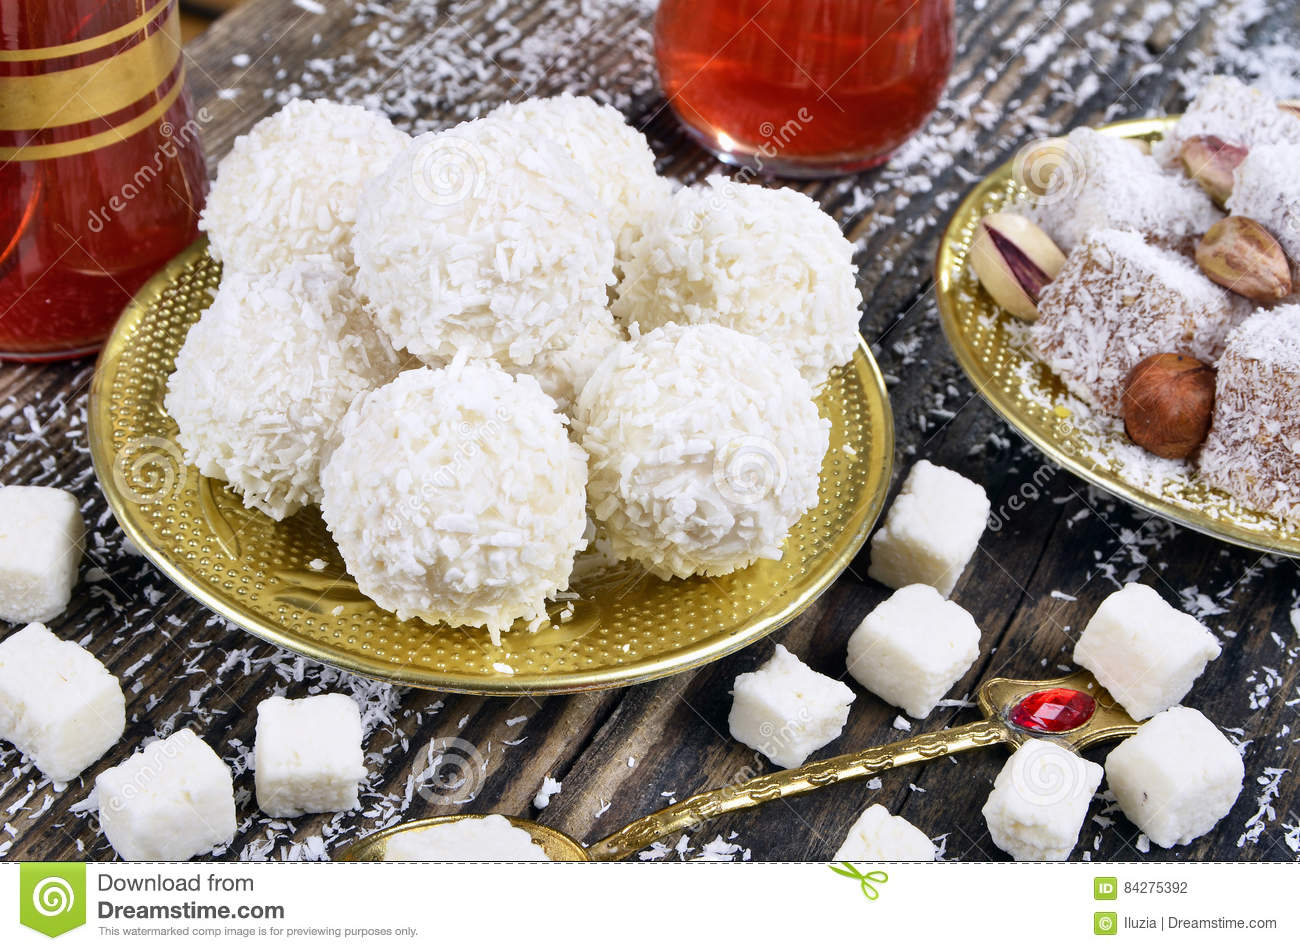 Coconut candy and turkish delight